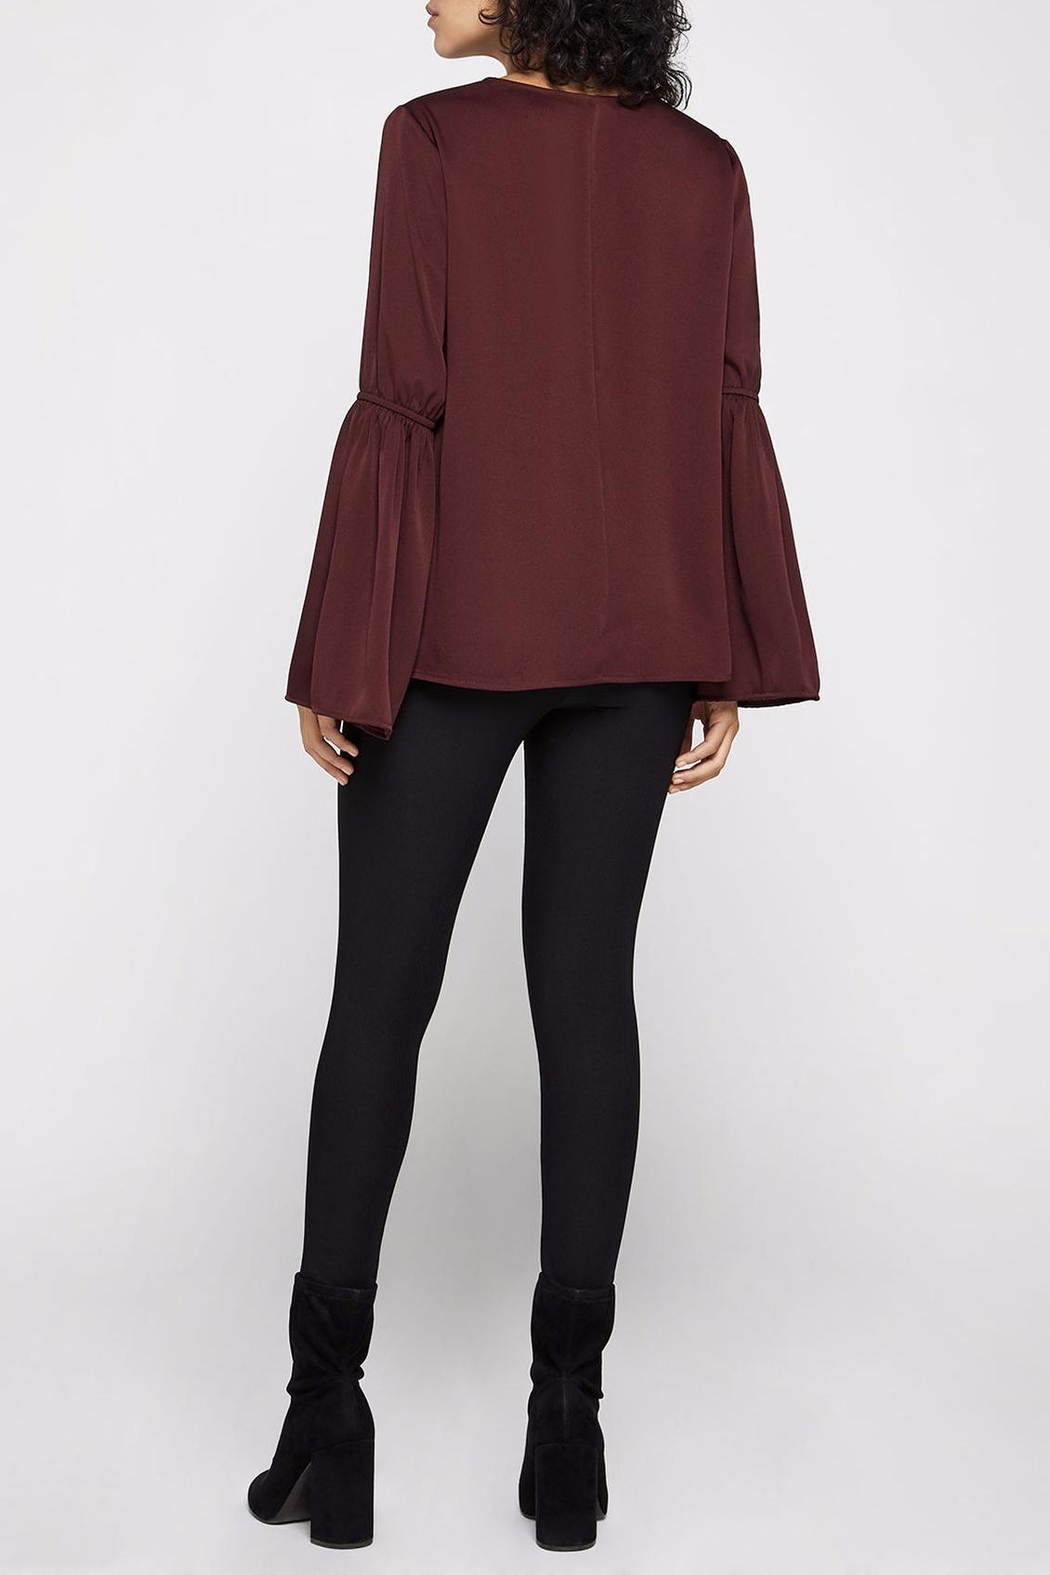 BCBGeneration Smocked Bell-Sleeve Top - Front Full Image